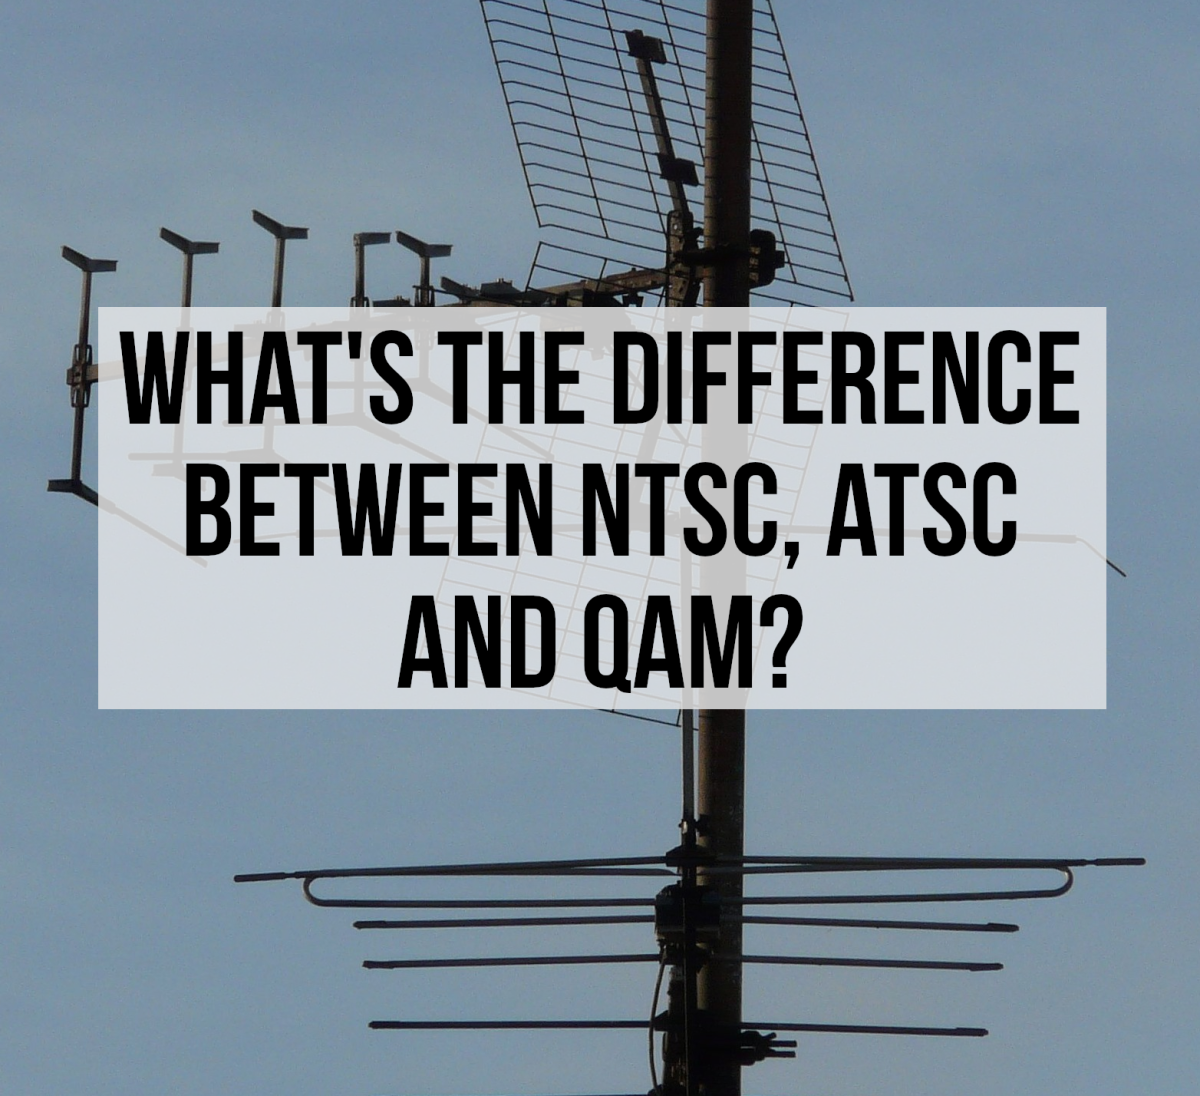 Difference Between NTSC, ATSC and QAM: A television aerial.  Outdoor aerials mounted high up, usually on a rooftop, are essential for picking up weak TV signals.